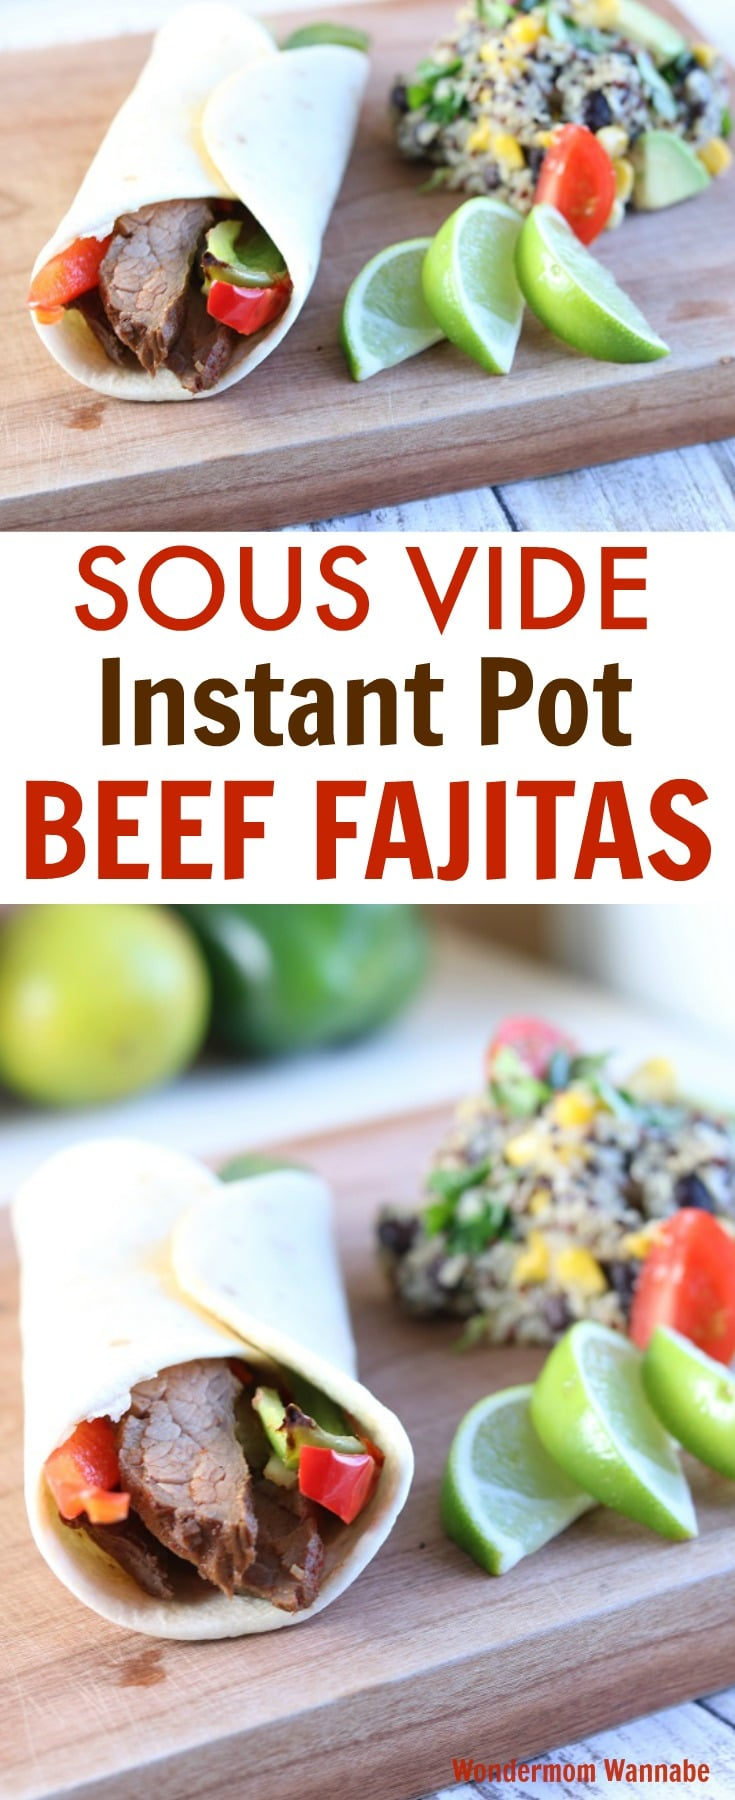 Once you've made Sous Vide Beef Fajitas in your Instant Pot, you may never be able to eat them any other way. Don't be afraid of this technique. It's easier than you think and the results are amazing! #instantpot #sousvide #texmex via @wondermomwannab